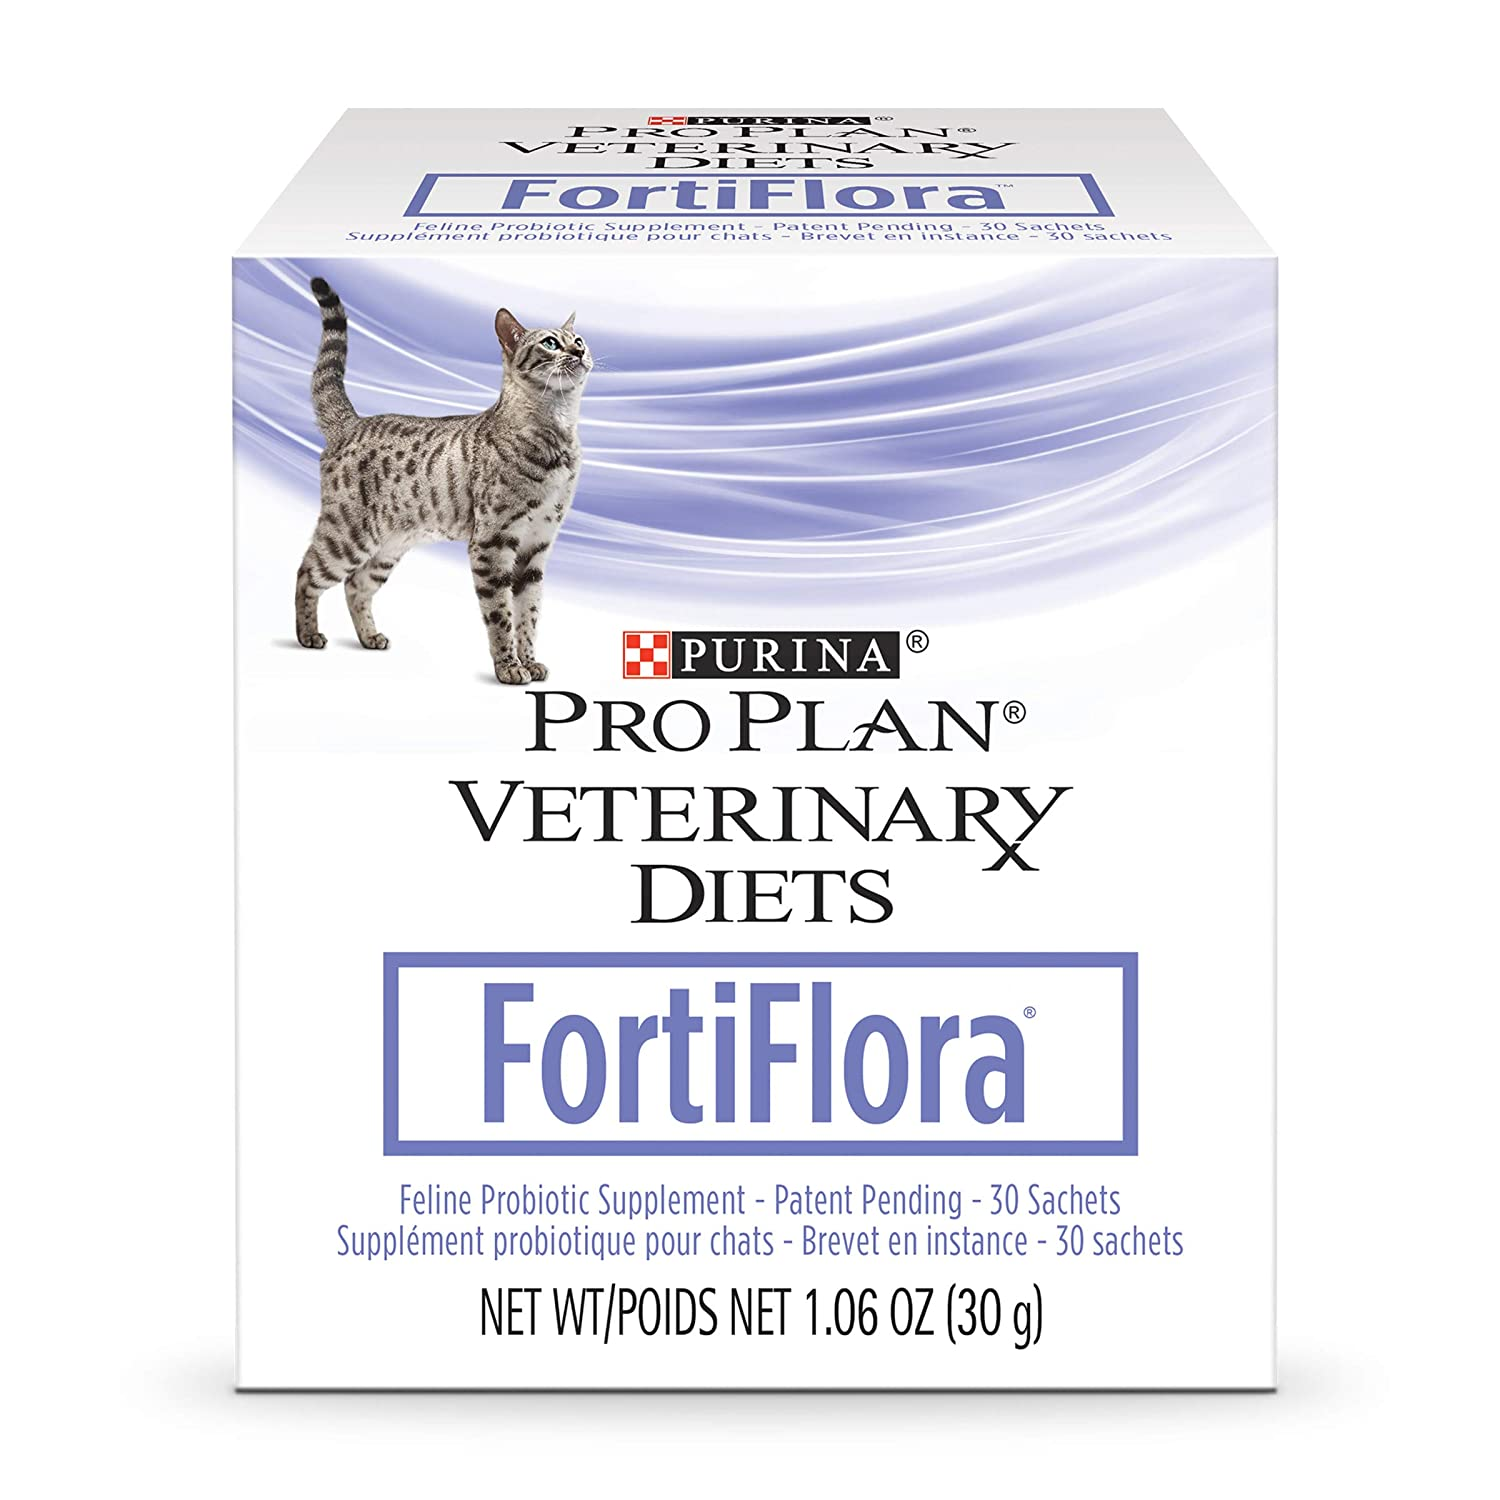 180 Count Purina Fortiflora Nutritional Supplement for Cats (Pack of 6)